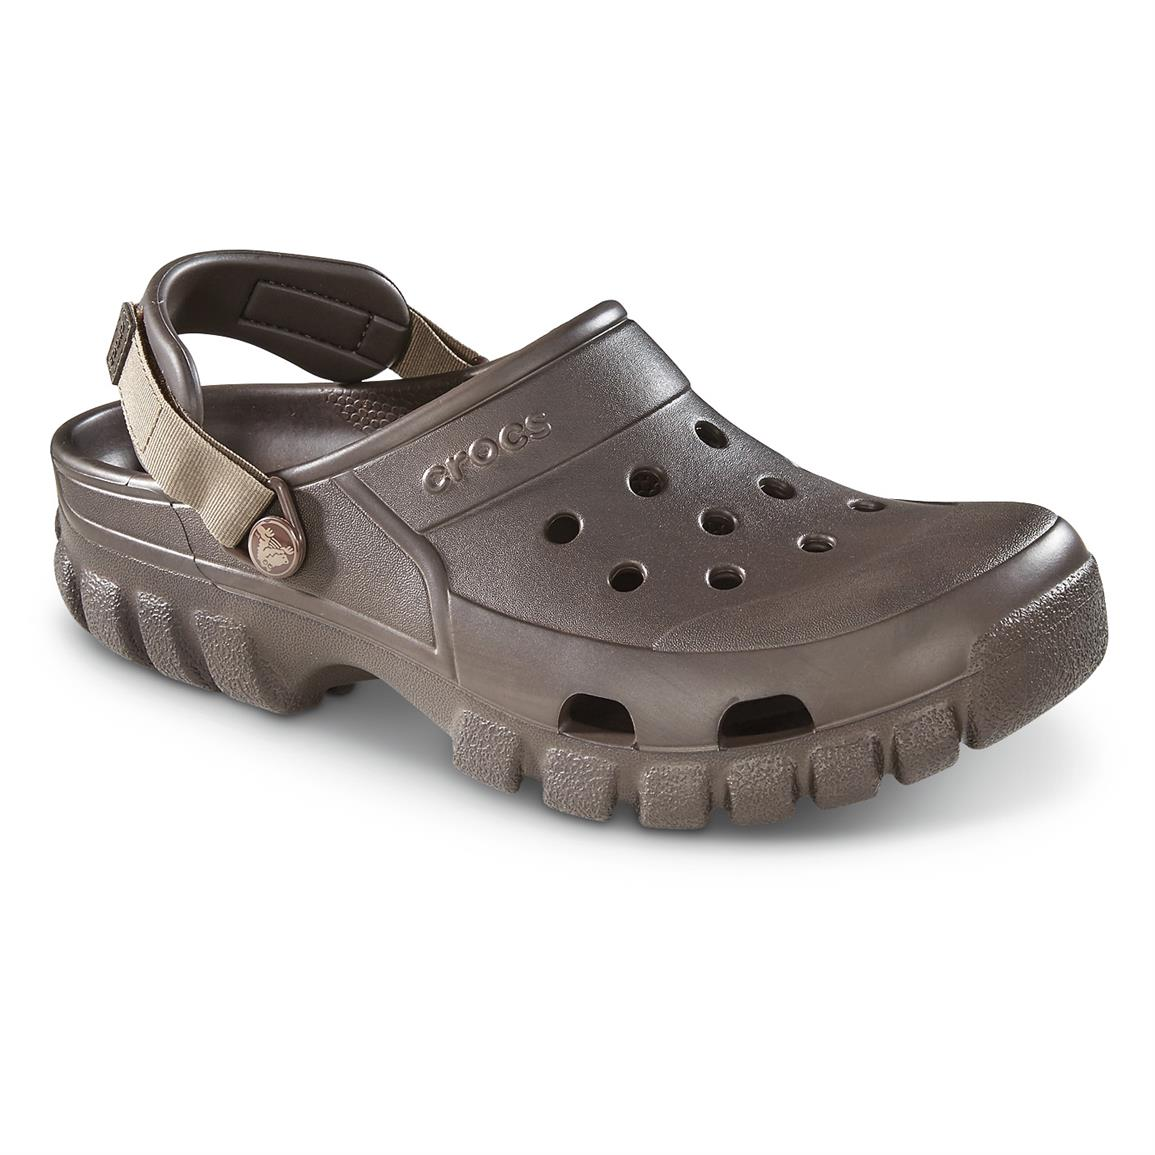 Crocs Men's Offroad Sport Clogs, Espresso / Walnut